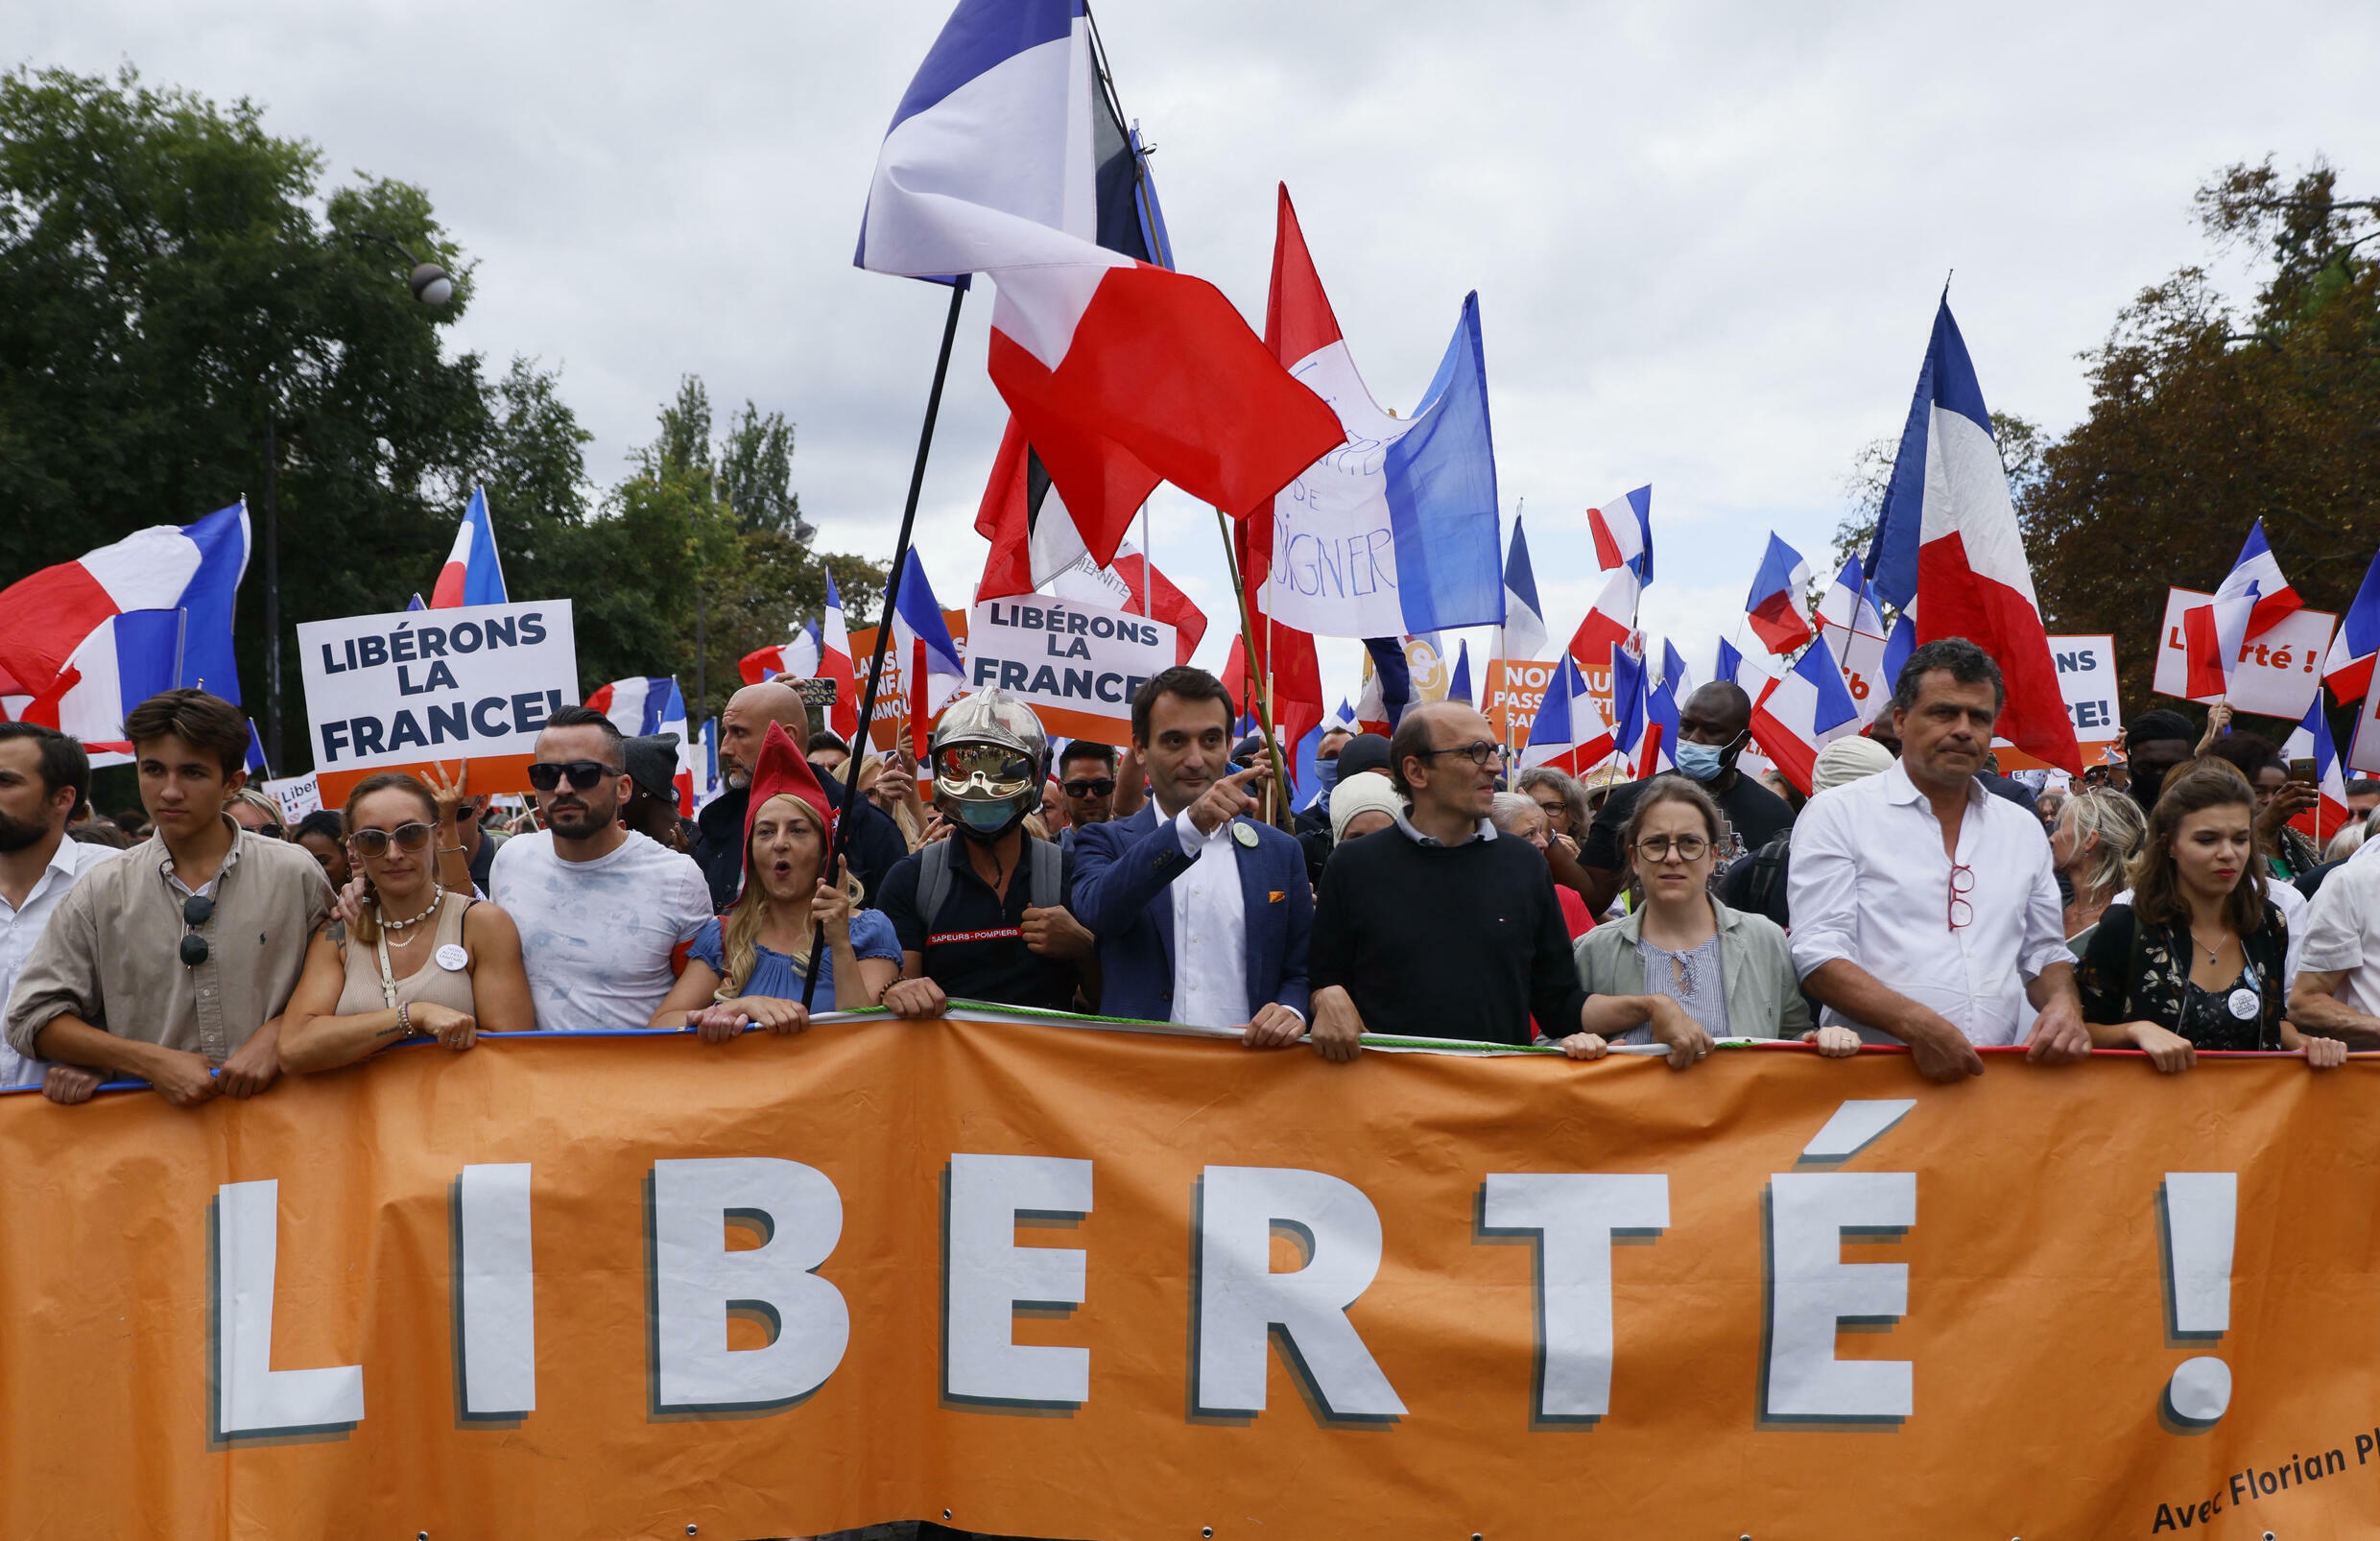 Florian Philippot (C) leads the Patriots rally in Paris, 11 September